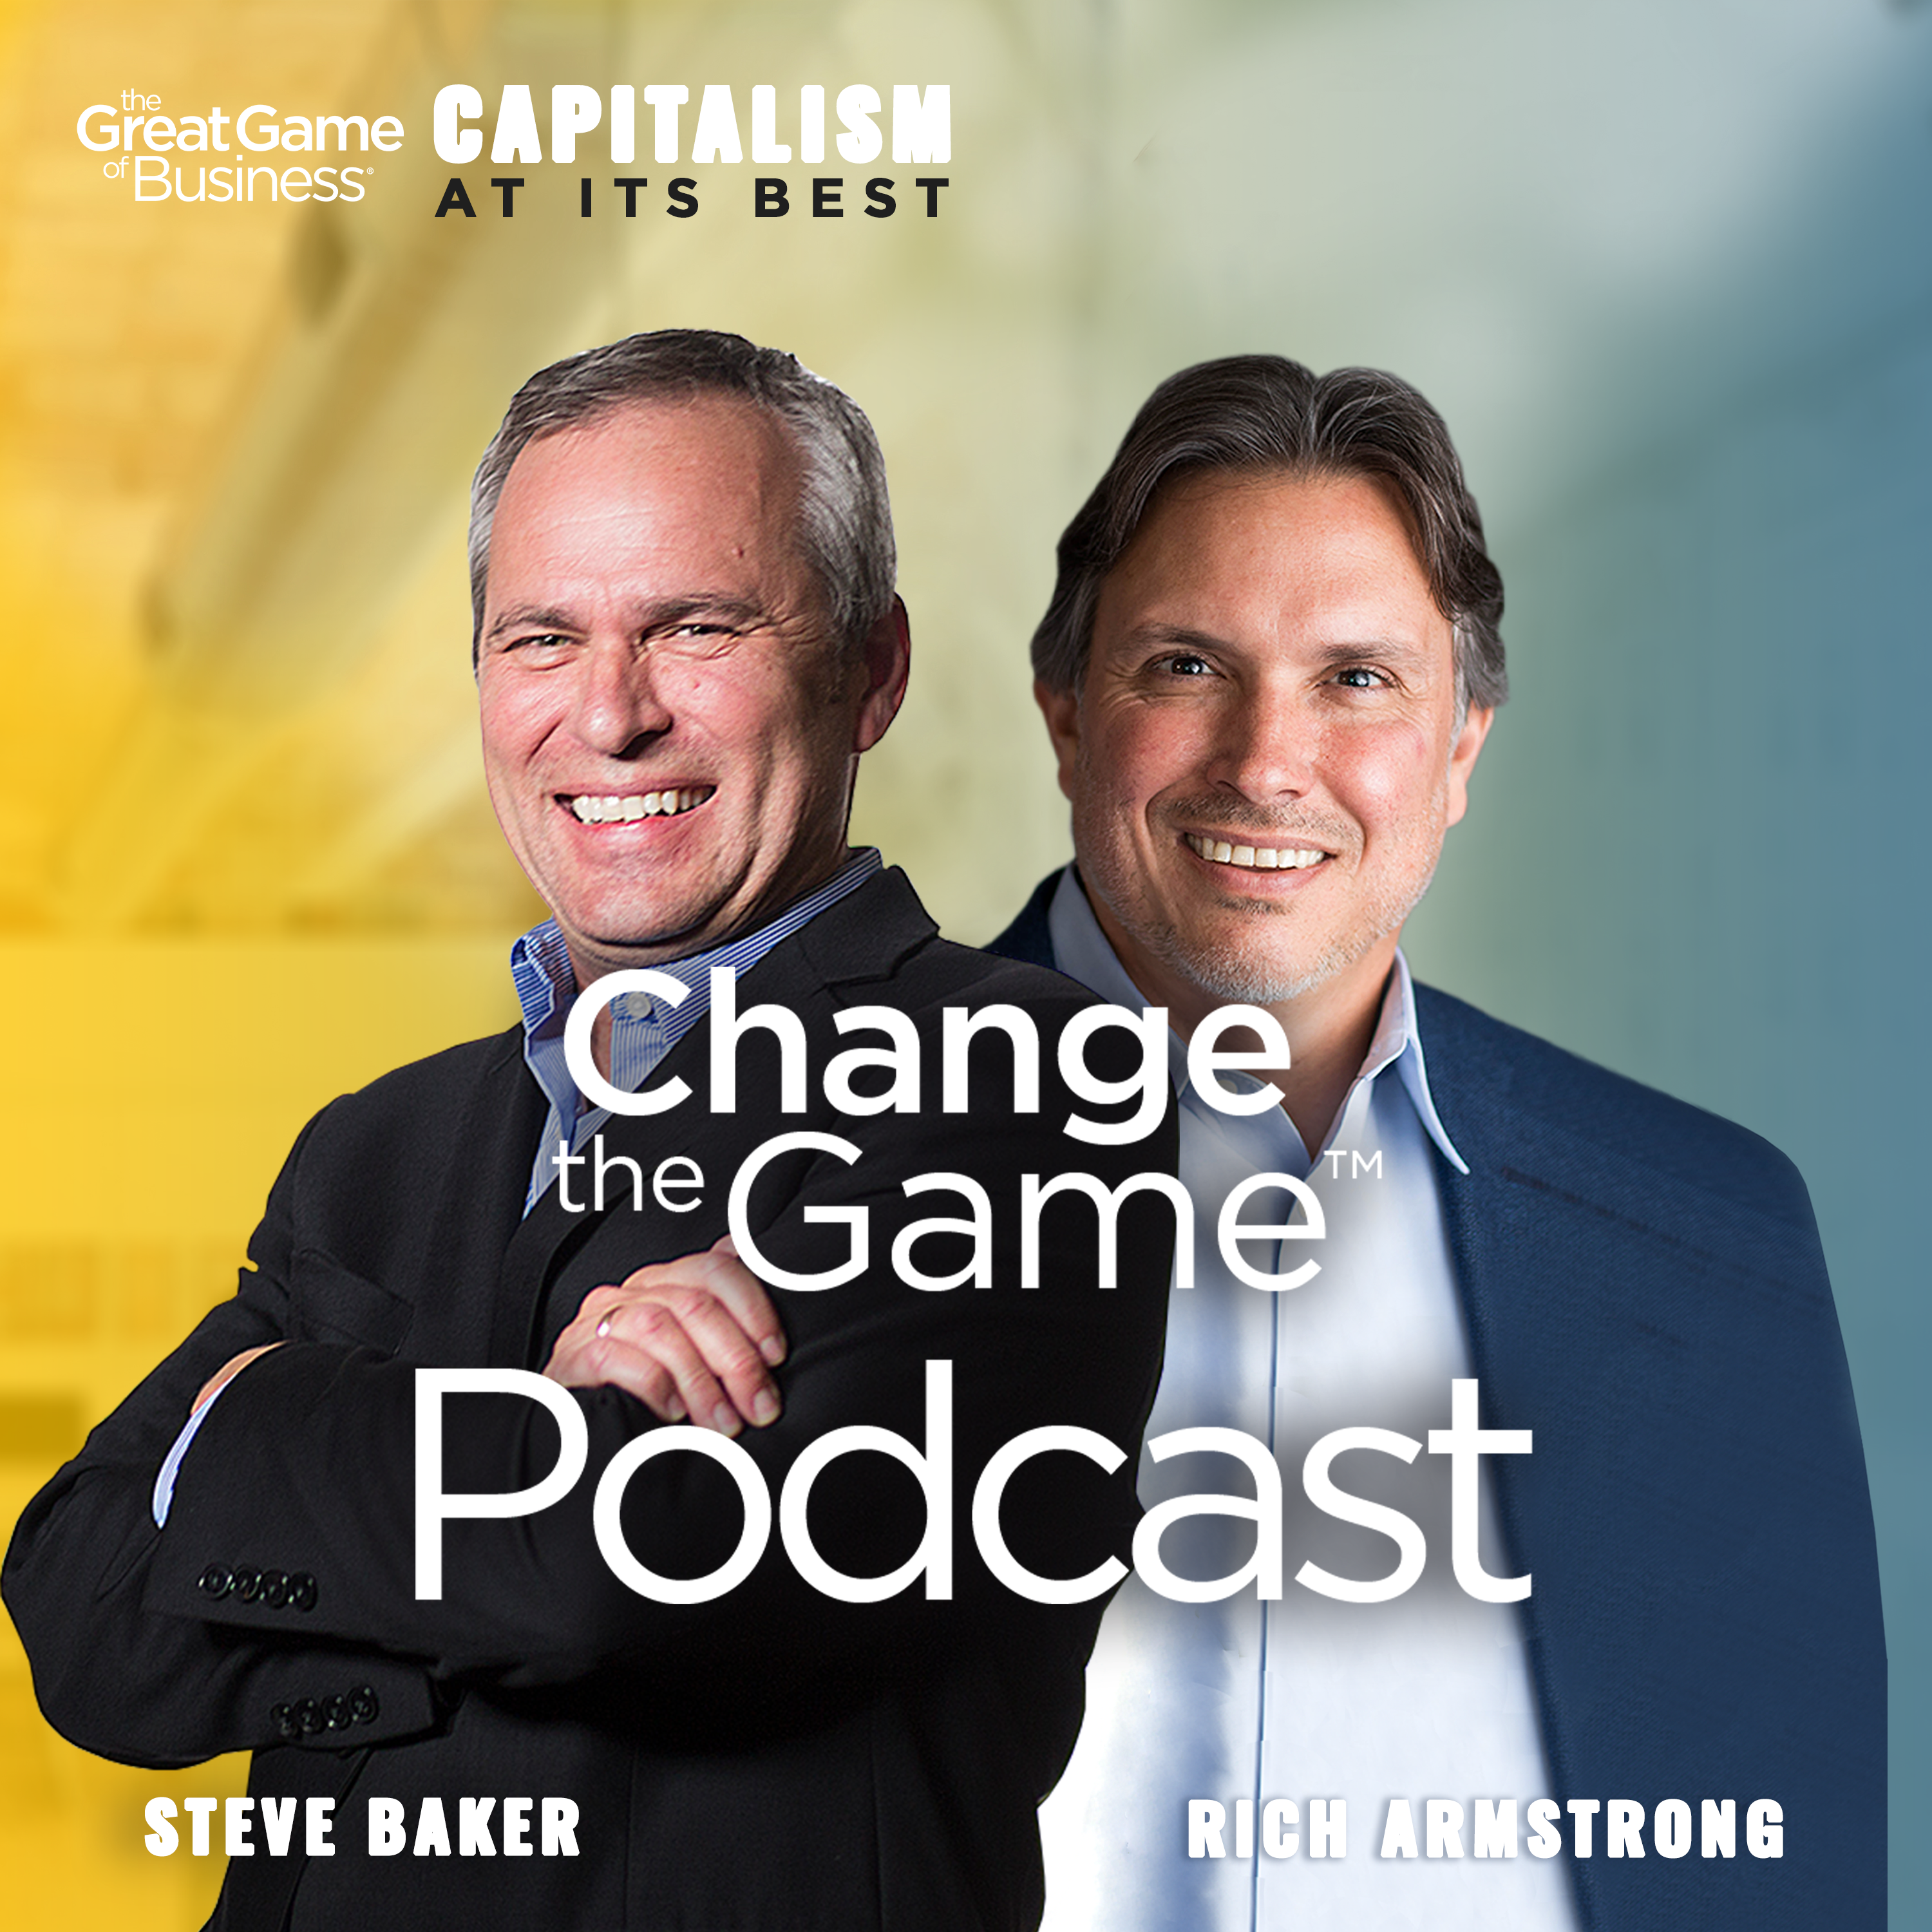 Change The Game Podcast show art